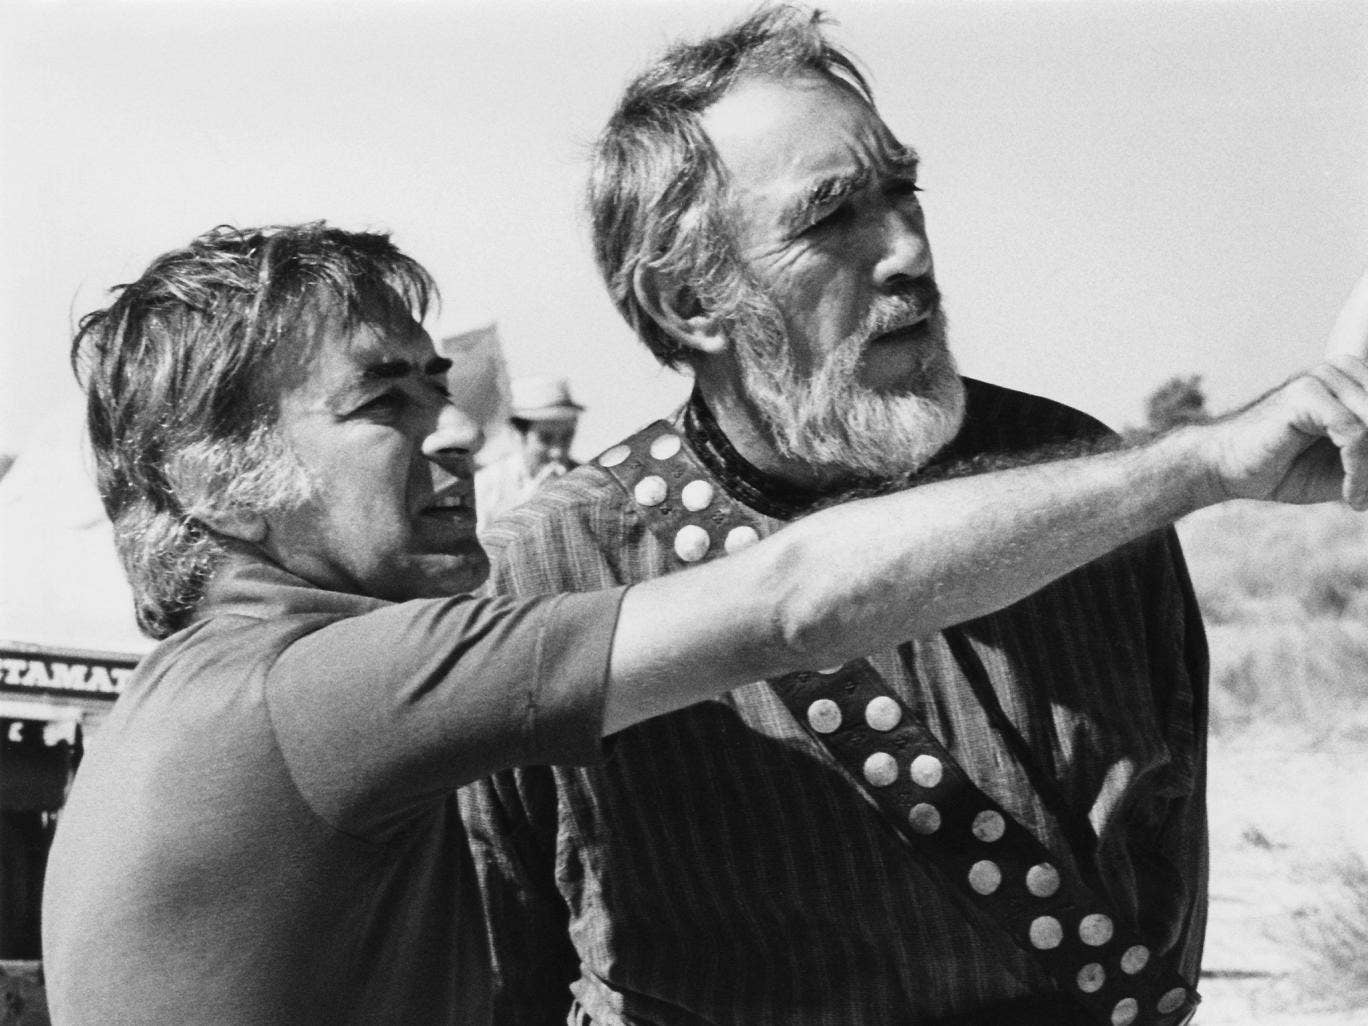 Moustapha Akkad, left, with Anthony Quinn during filming of The Message in 1976